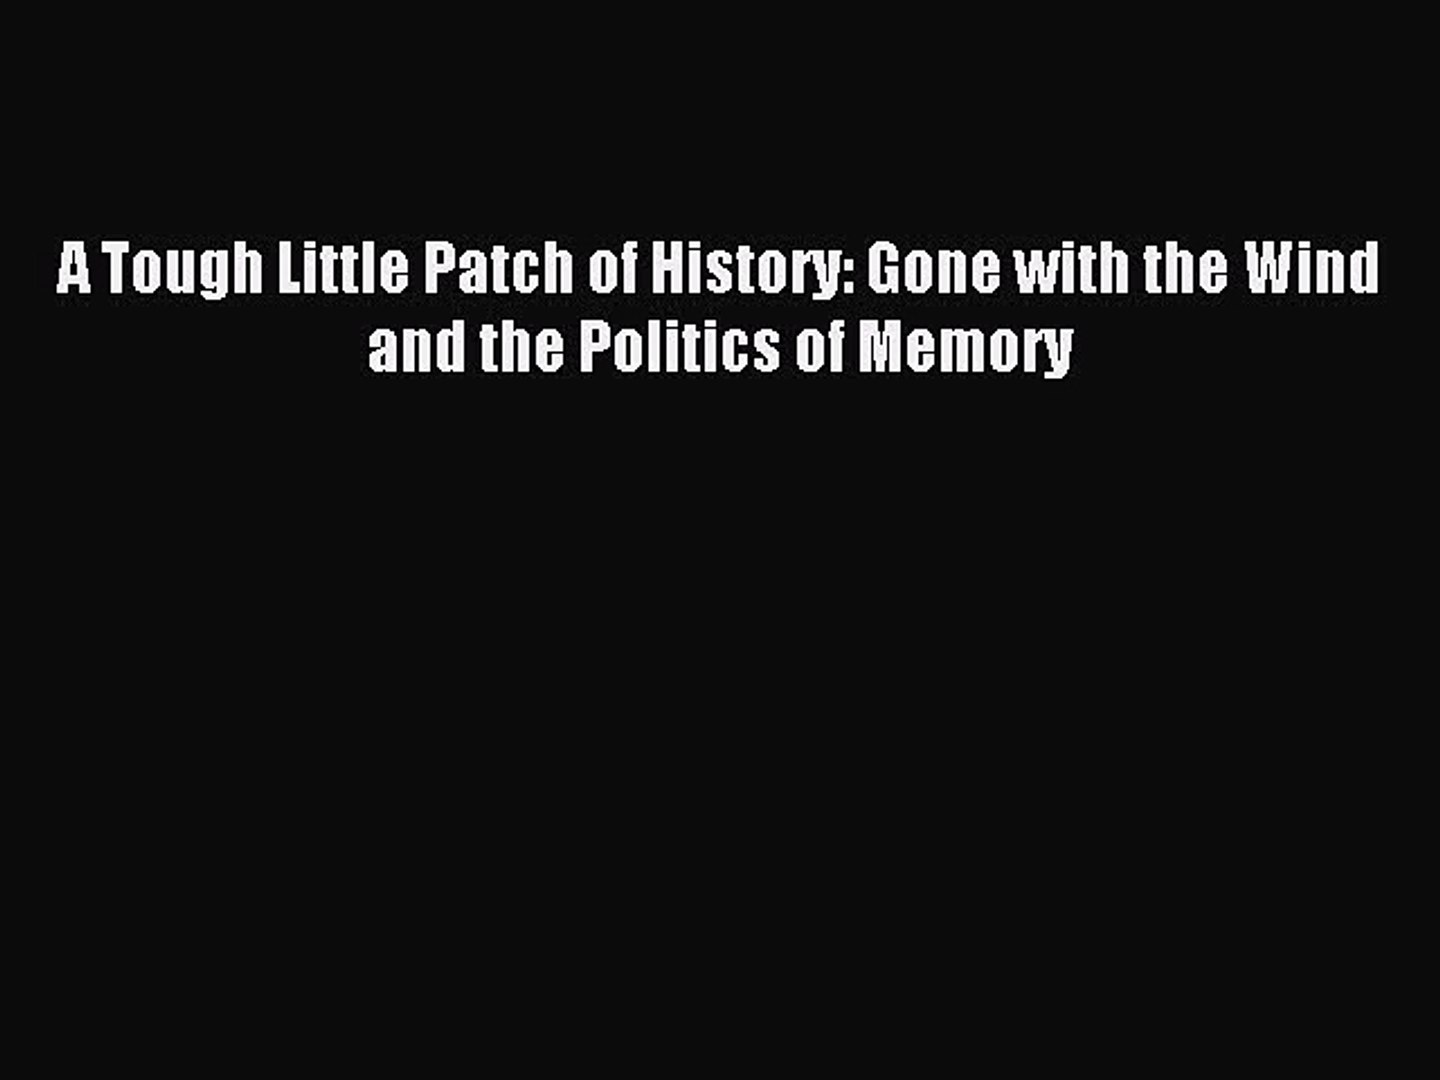 [PDF] A Tough Little Patch of History: Gone with the Wind and the Politics of Memory [Download]